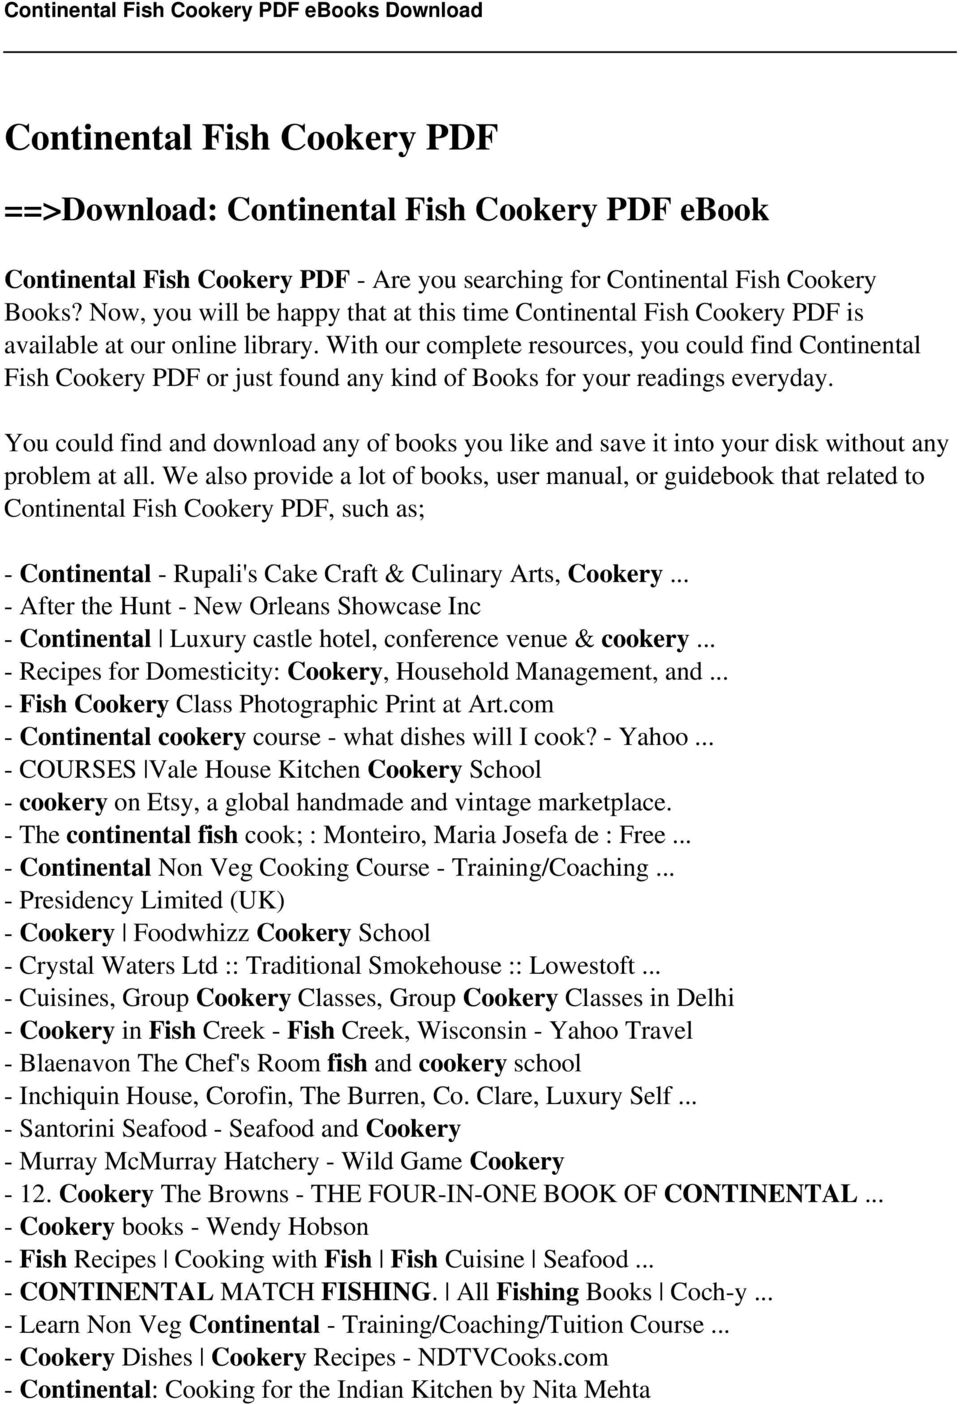 Continental fish cookery pdf pdf with our complete resources you could find continental fish cookery pdf or just found any fandeluxe Gallery